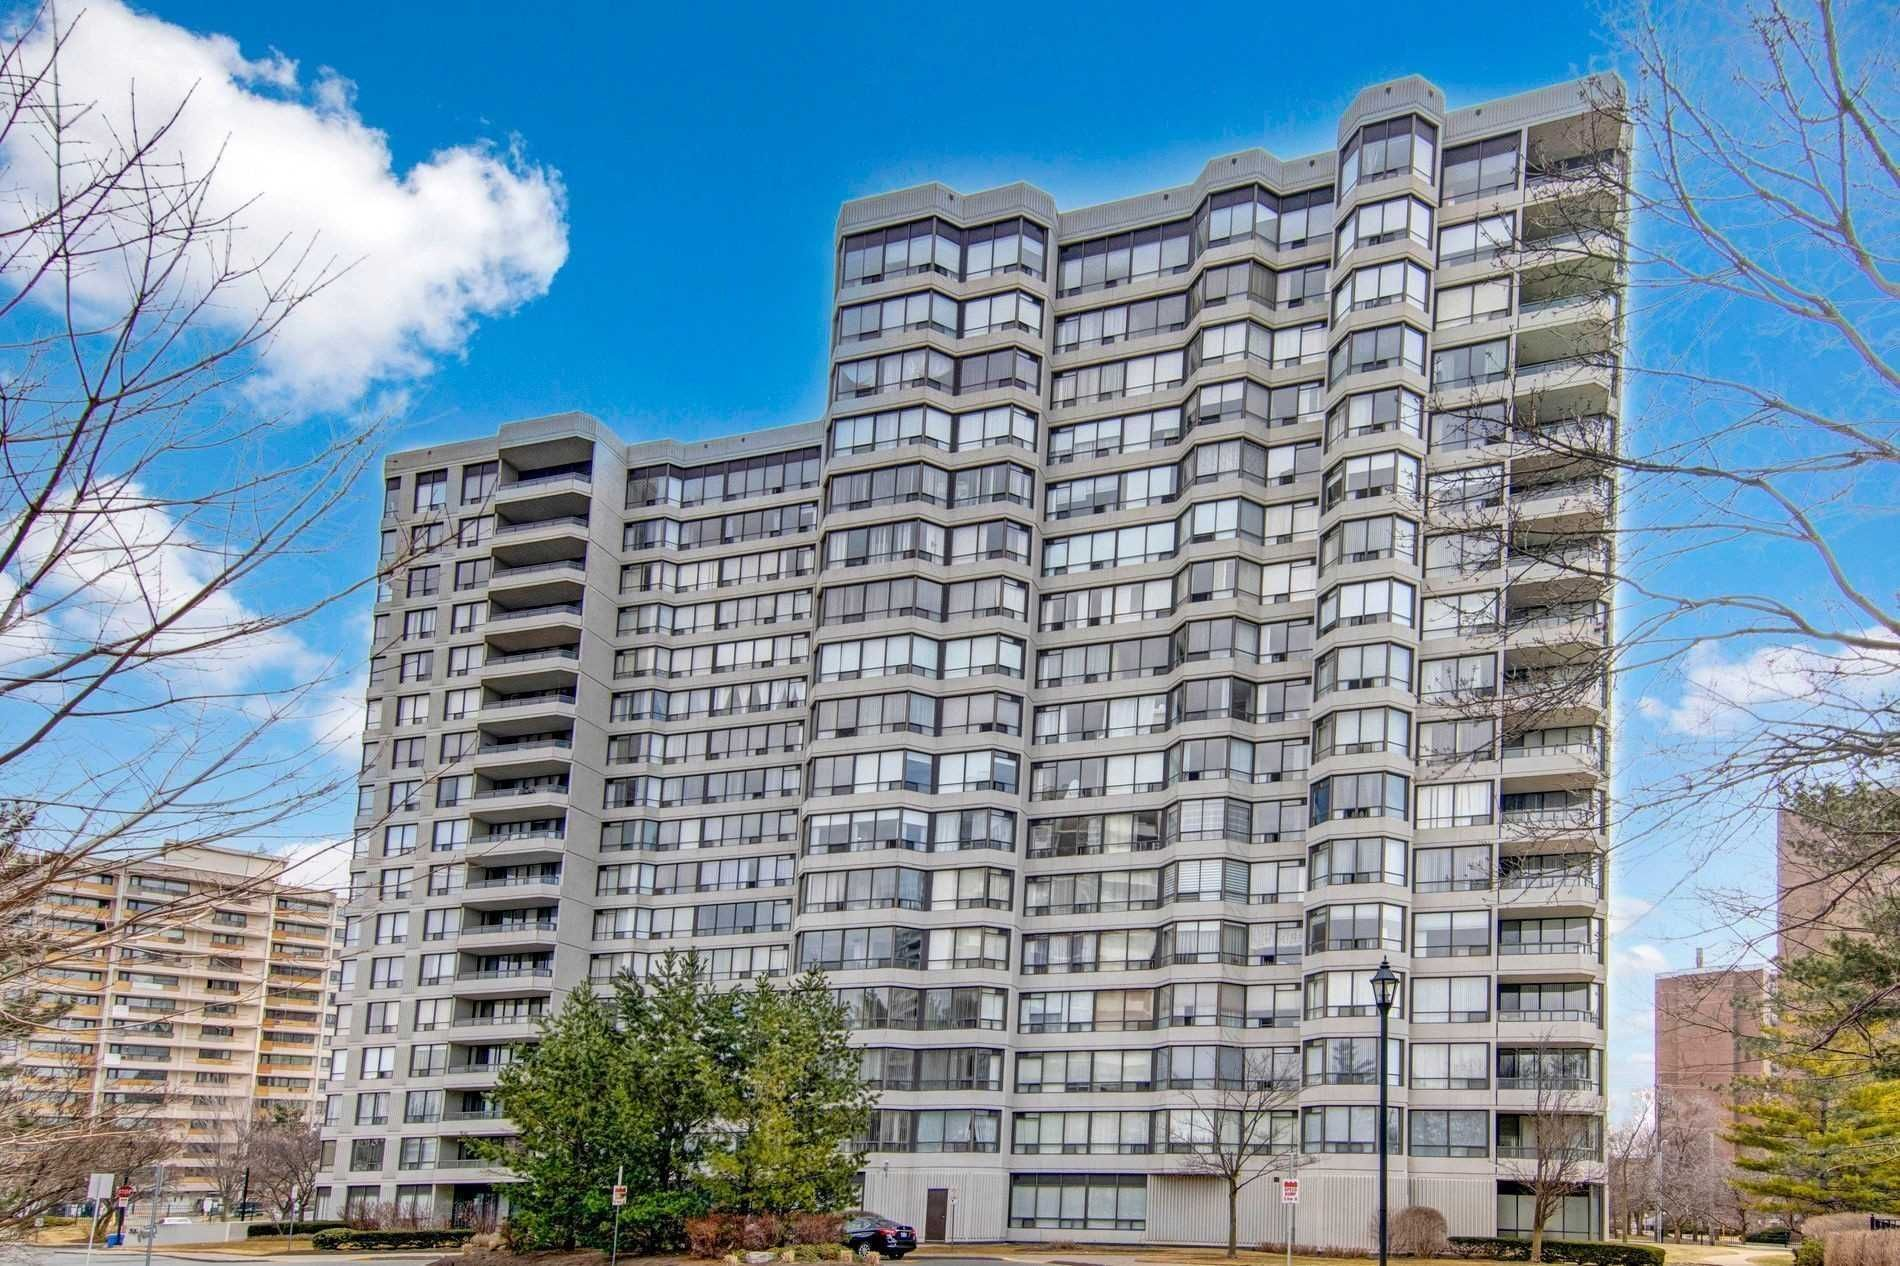 1101 Steeles Ave W, unit 502 for sale in Toronto - image #1